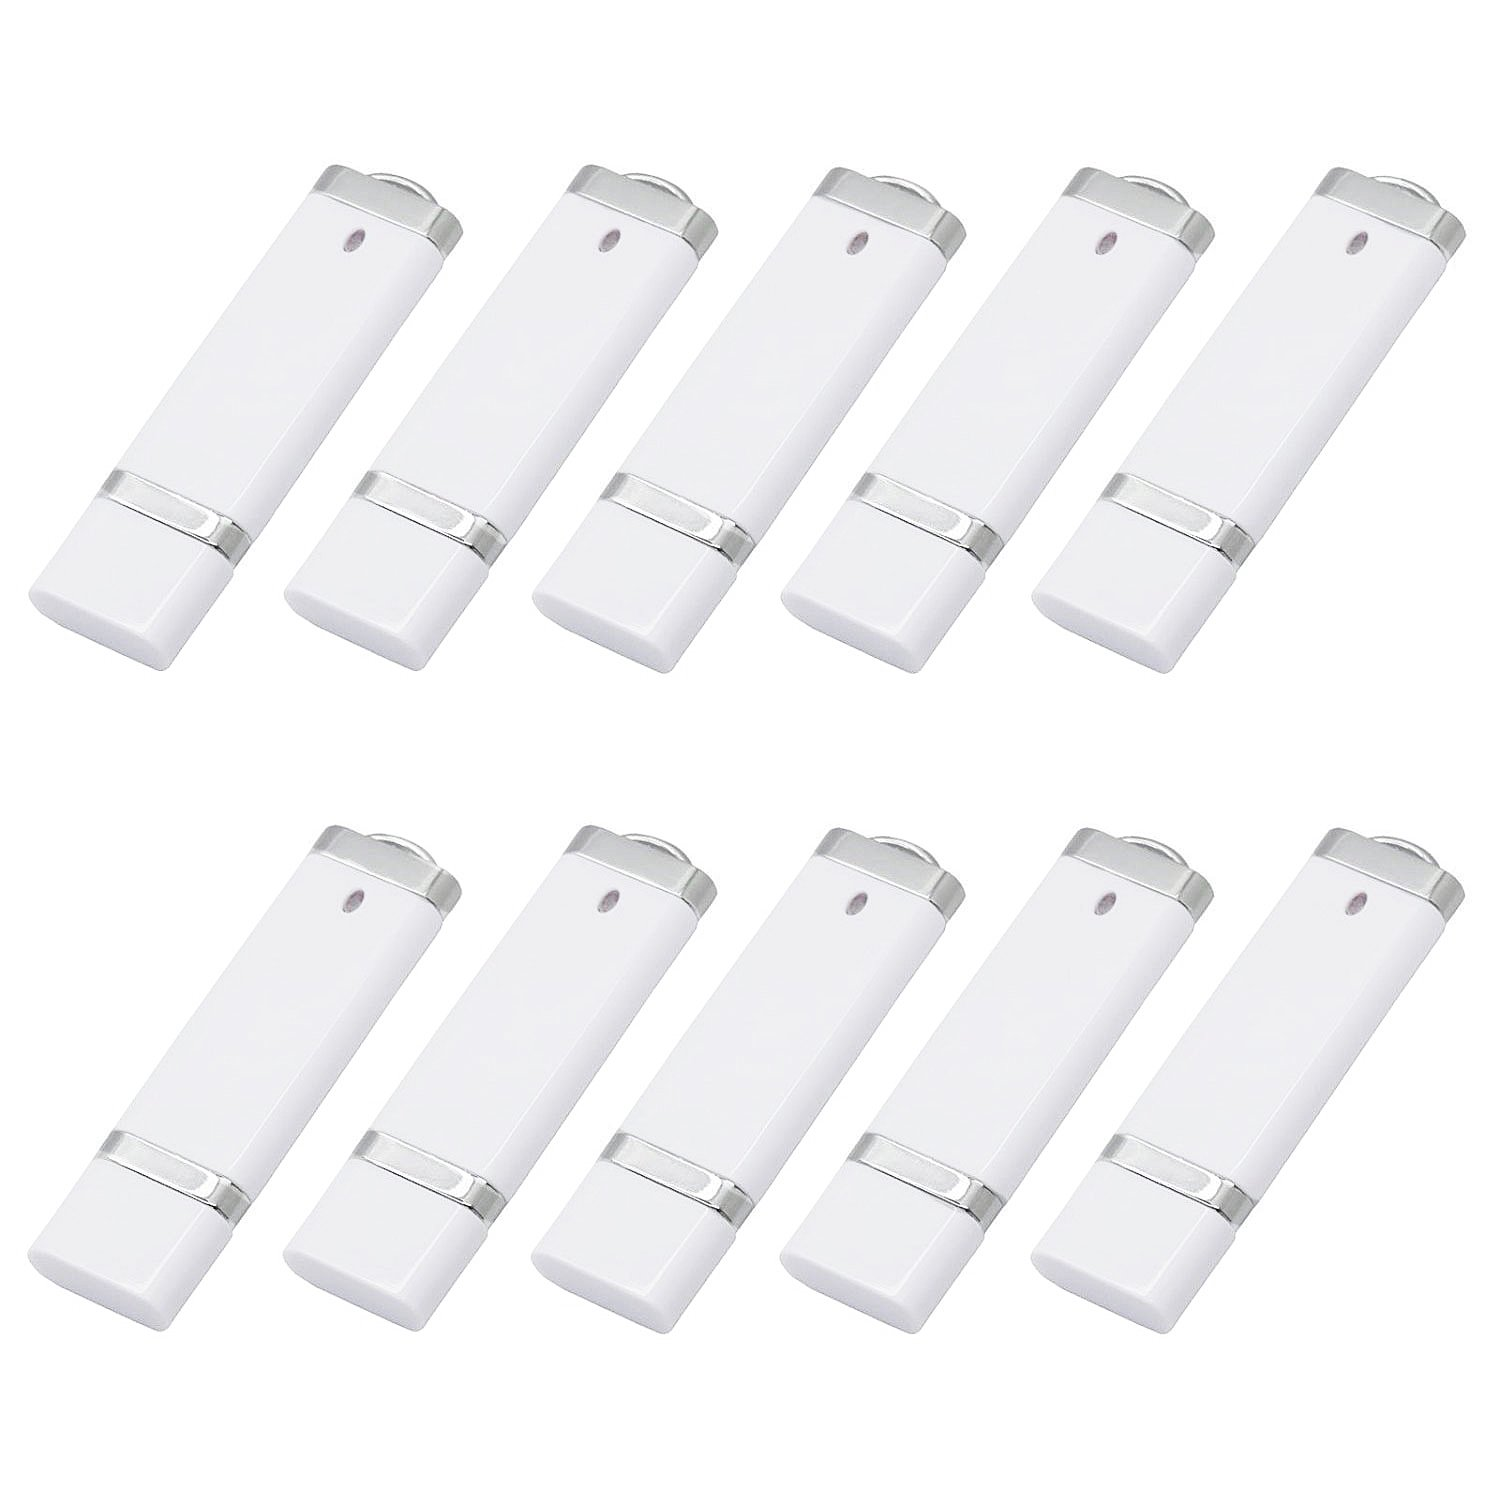 KEXIN 50pcs 4G USB Flash Drive - Bulk Pack - Flash Drive Design in Snapcap 4GB White by KEXIN